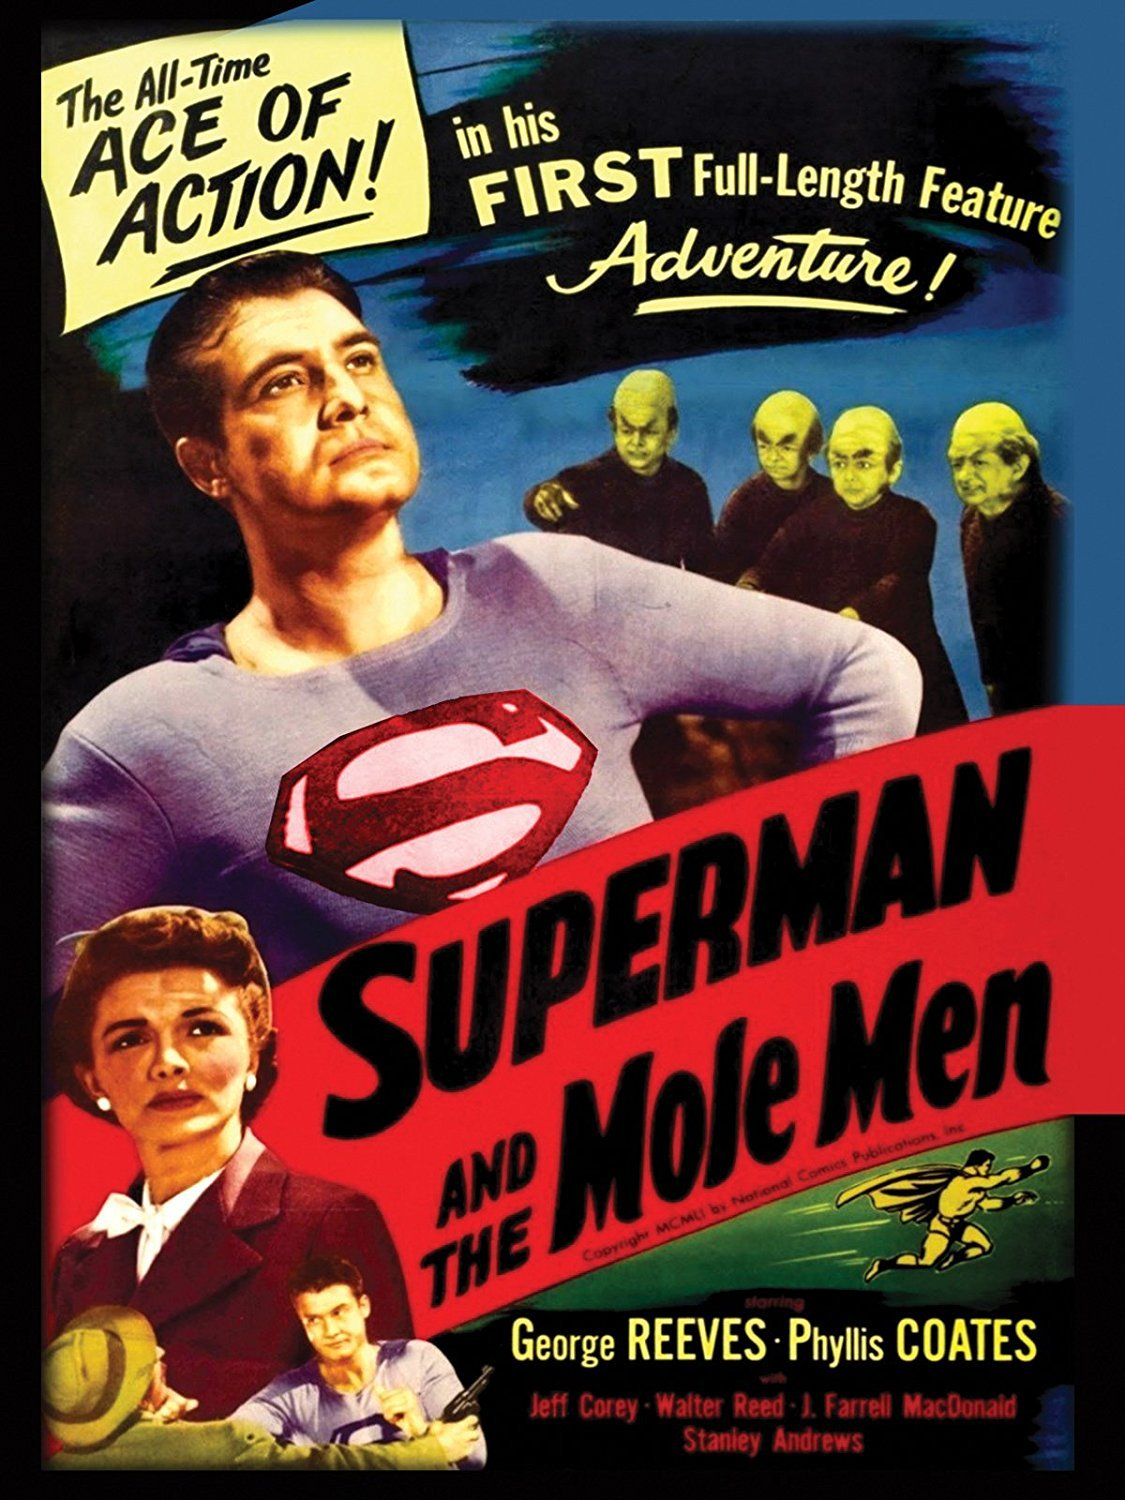 Superman and the Mole Man (1951) starring George Reeves, Phyllis Coates, Jeff Corey